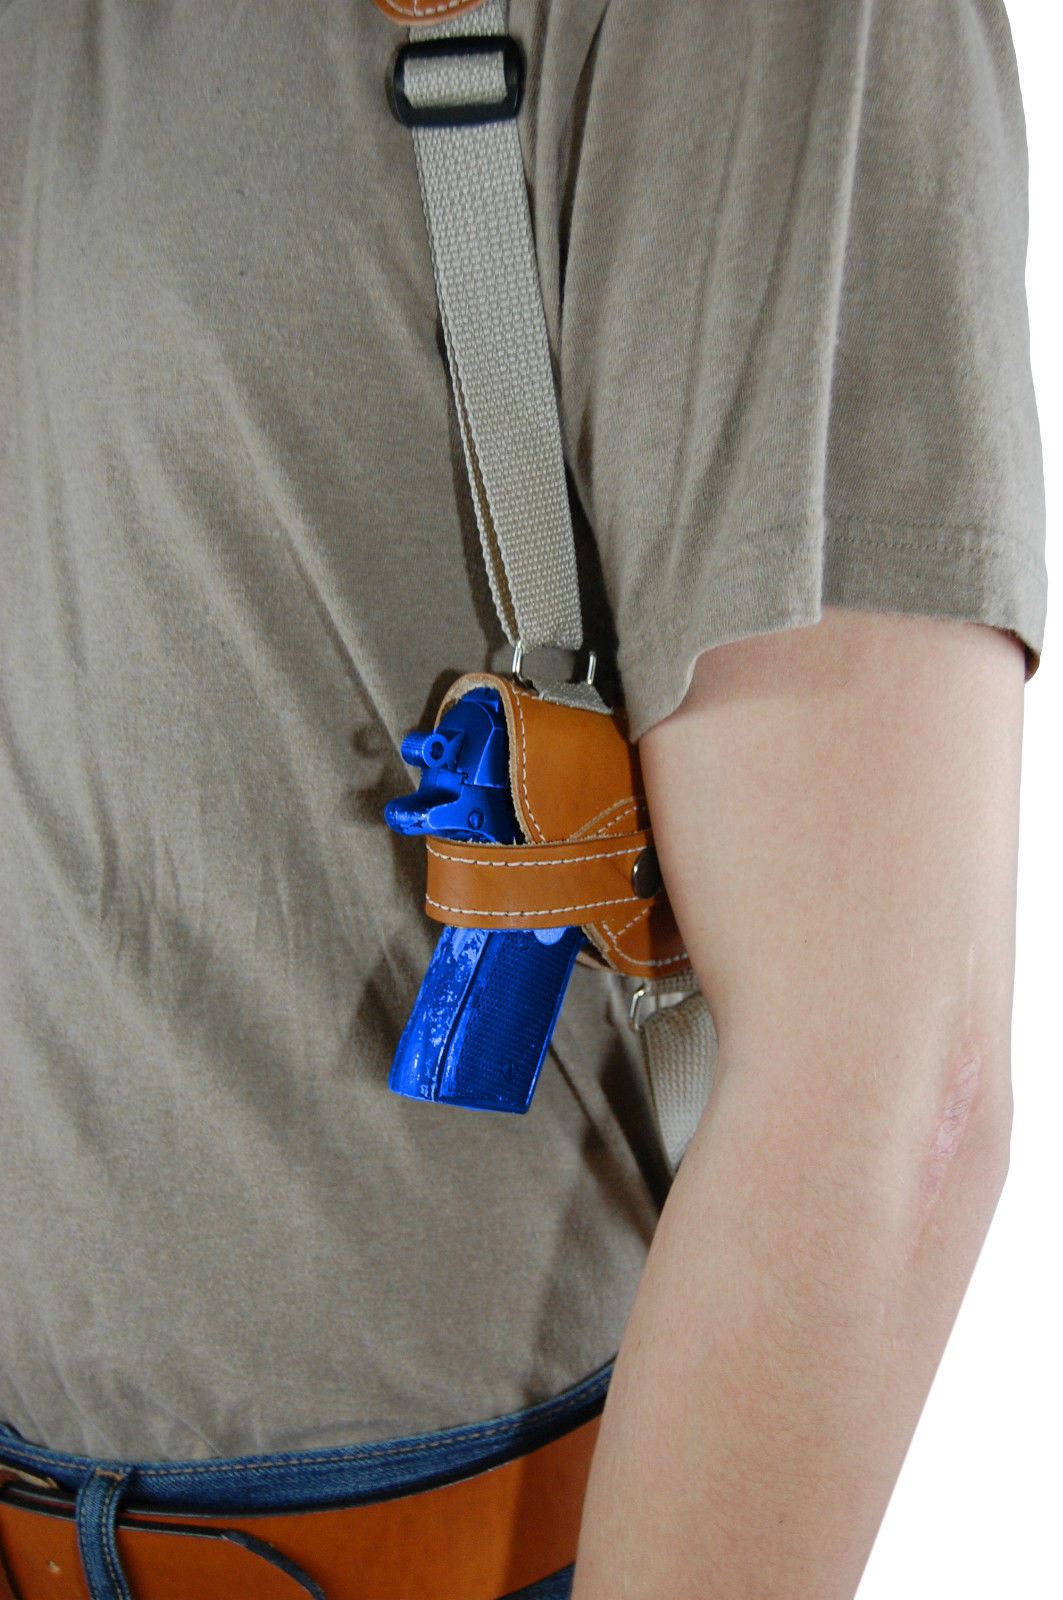 NEW Barsony Tan Leather Shoulder Holster for Sig, Walther Small 380 Ultra-Comp